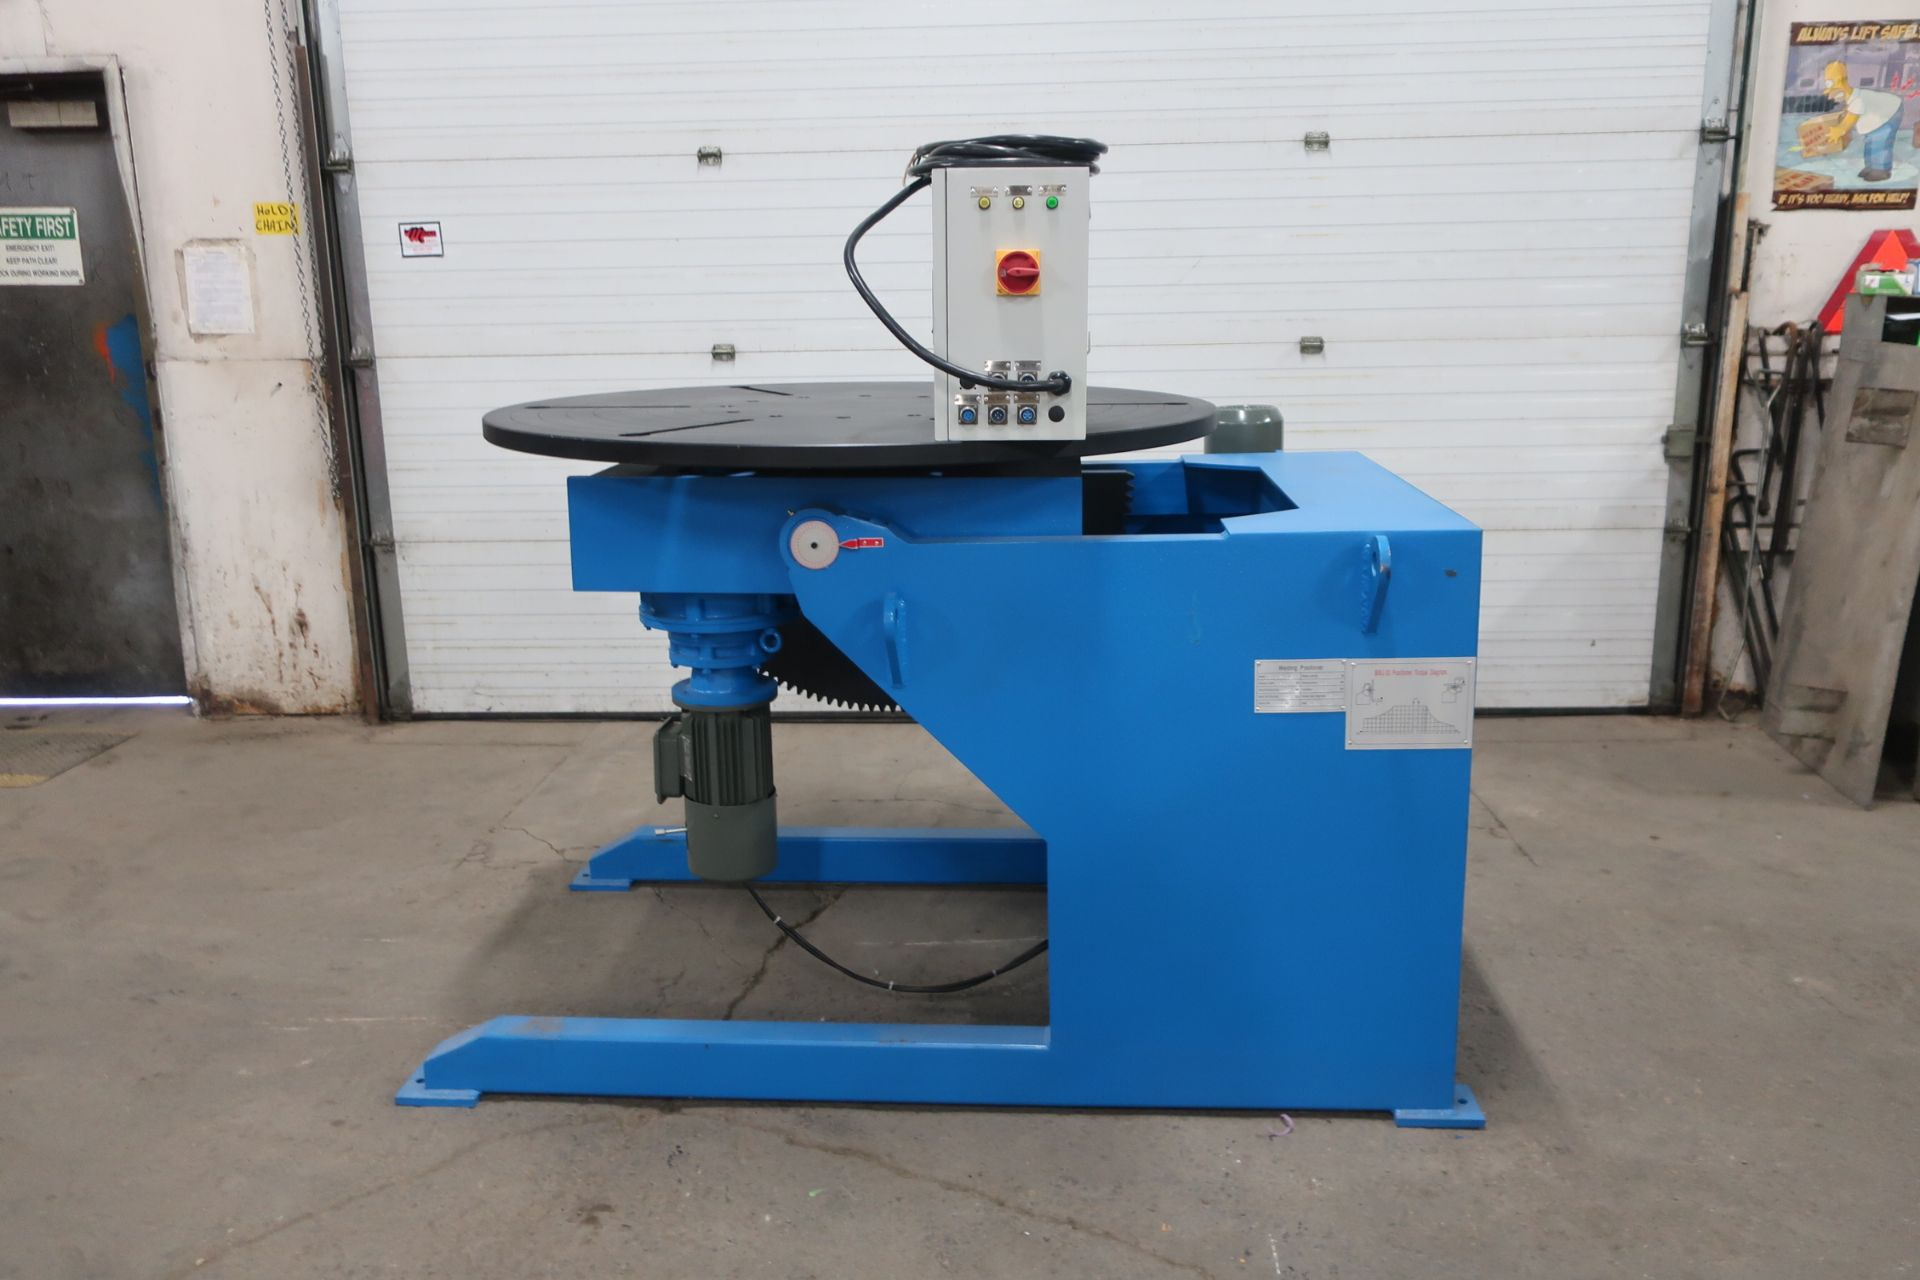 BWJ-30 WELDING POSITIONER 3000kg or 6600lbs capacity - tilt and rotate with variable speed drive and